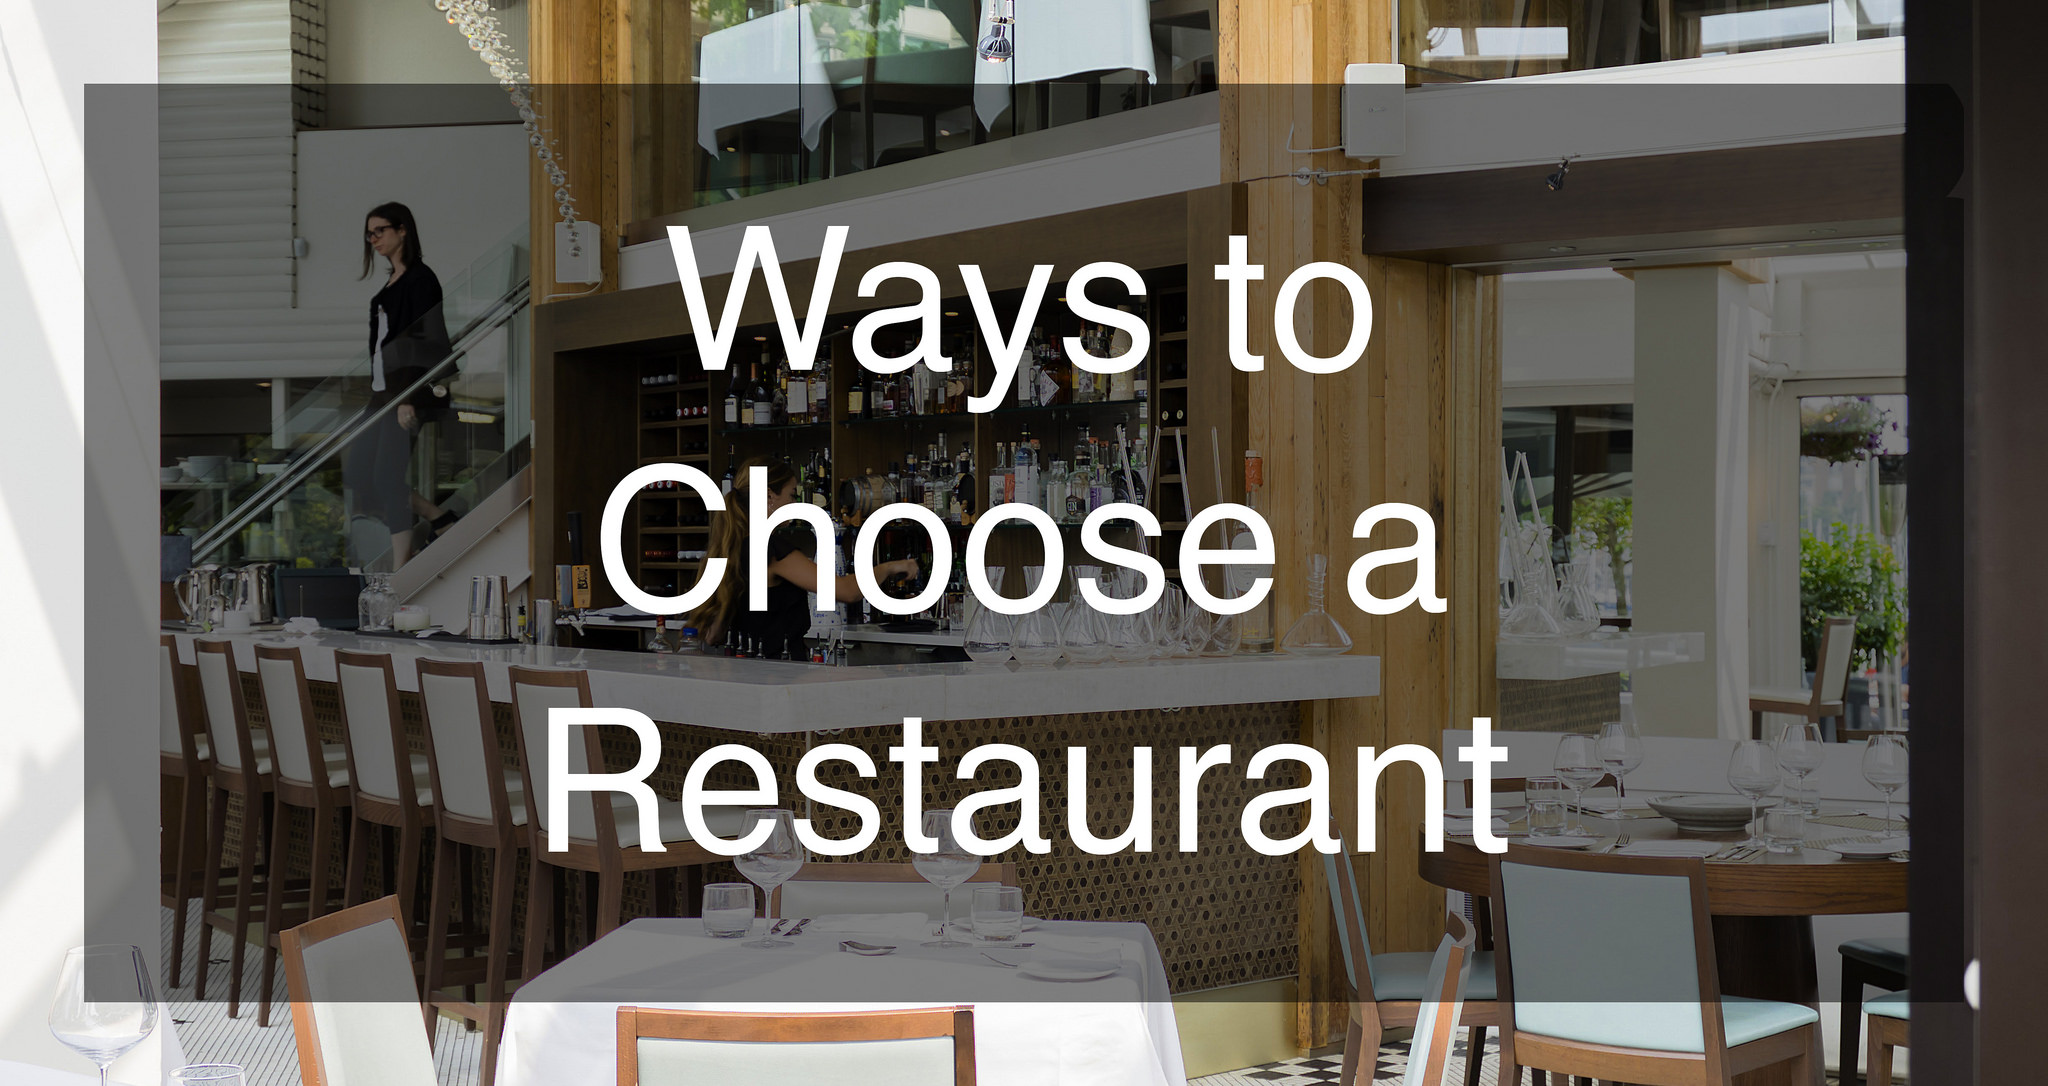 Ways to Choose a Restaurant